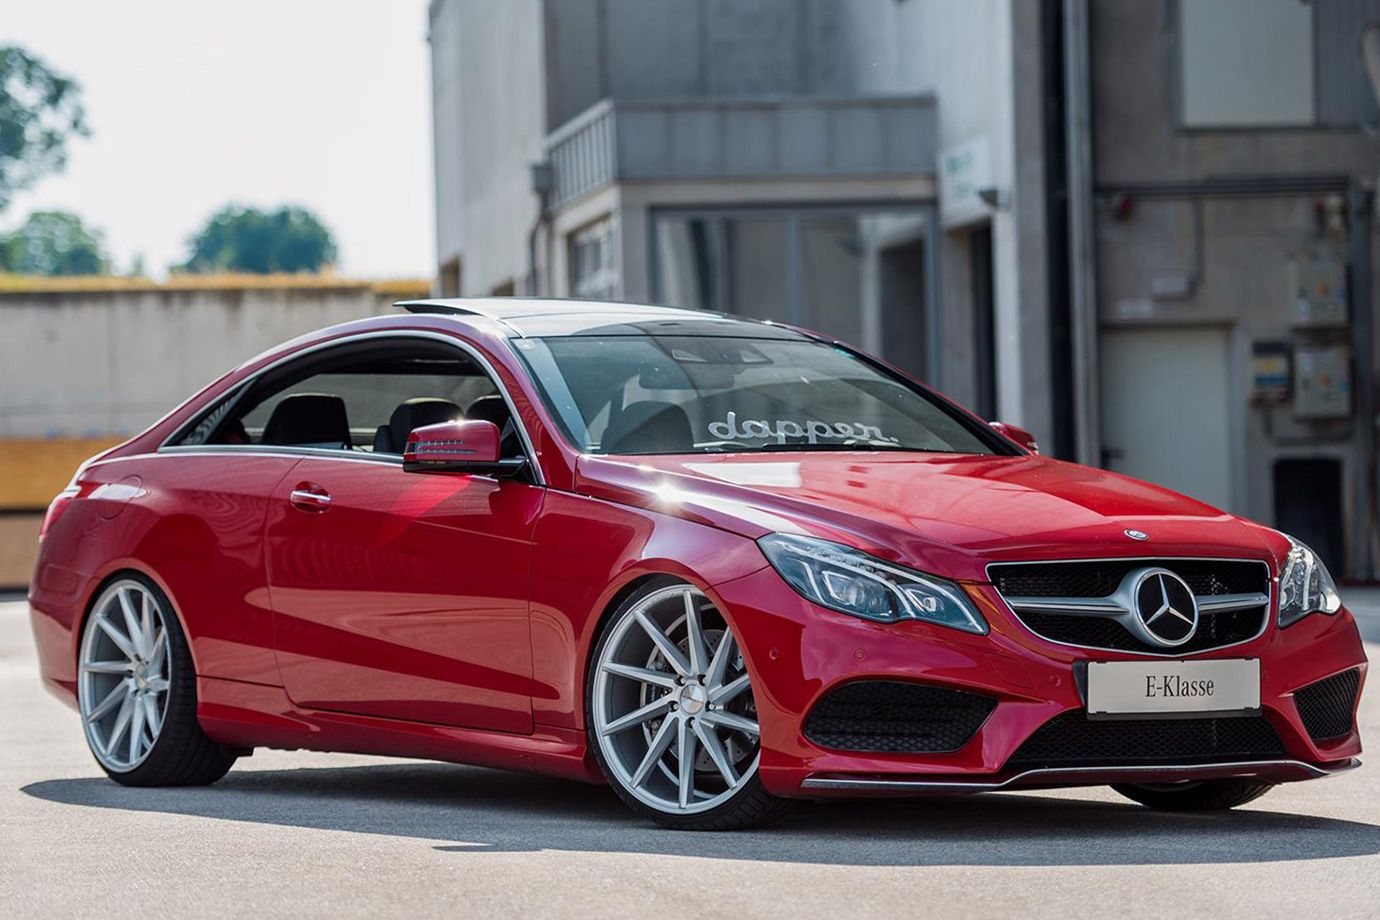 Mercedez Benz C207 E Class Coupe With Vossen Cvt Wheels Mercedes